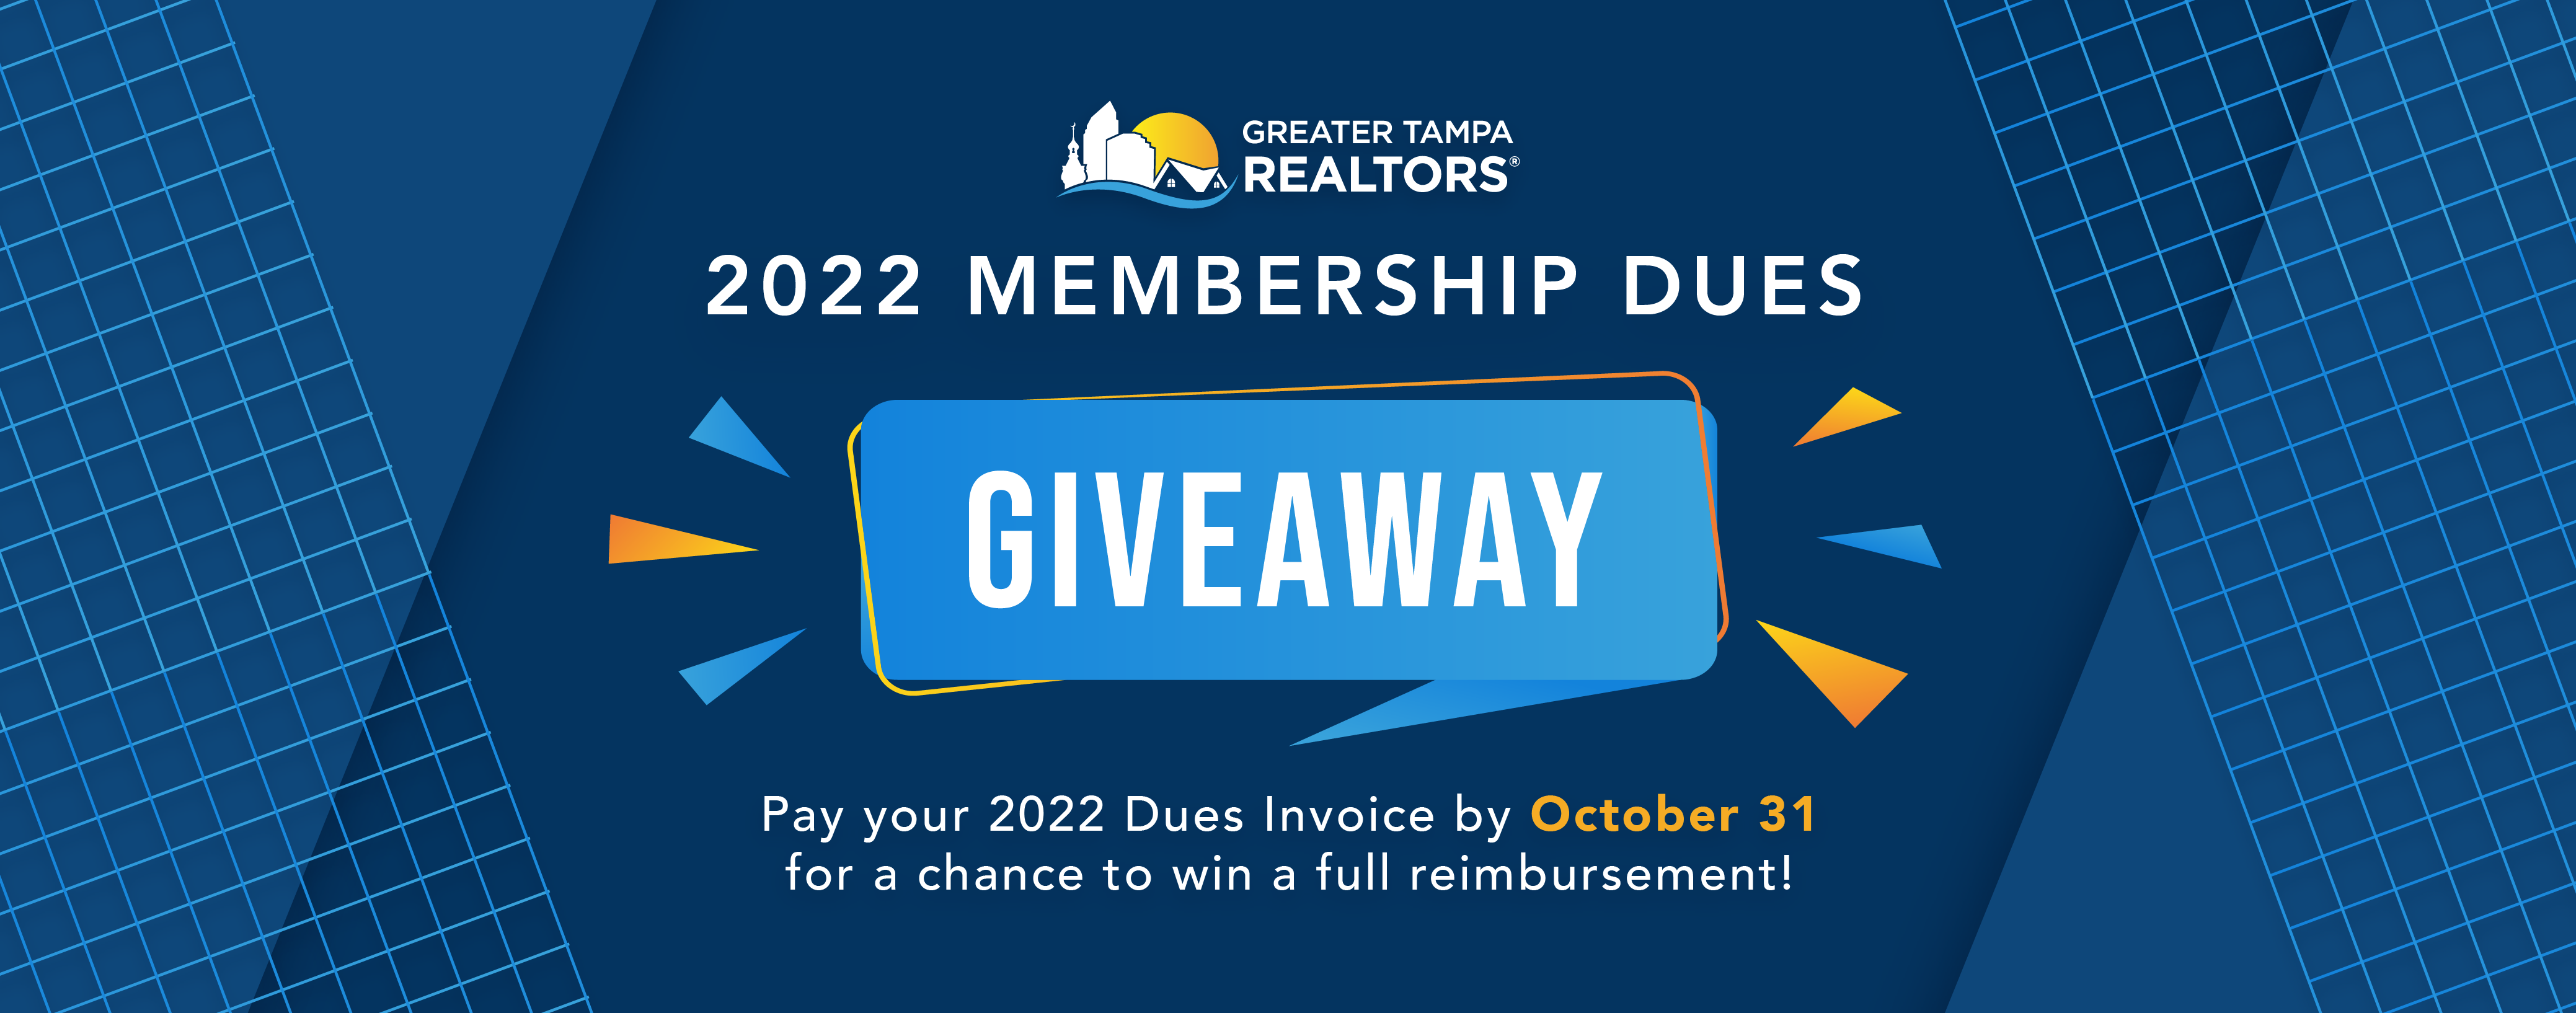 2022 Dues_giveaway